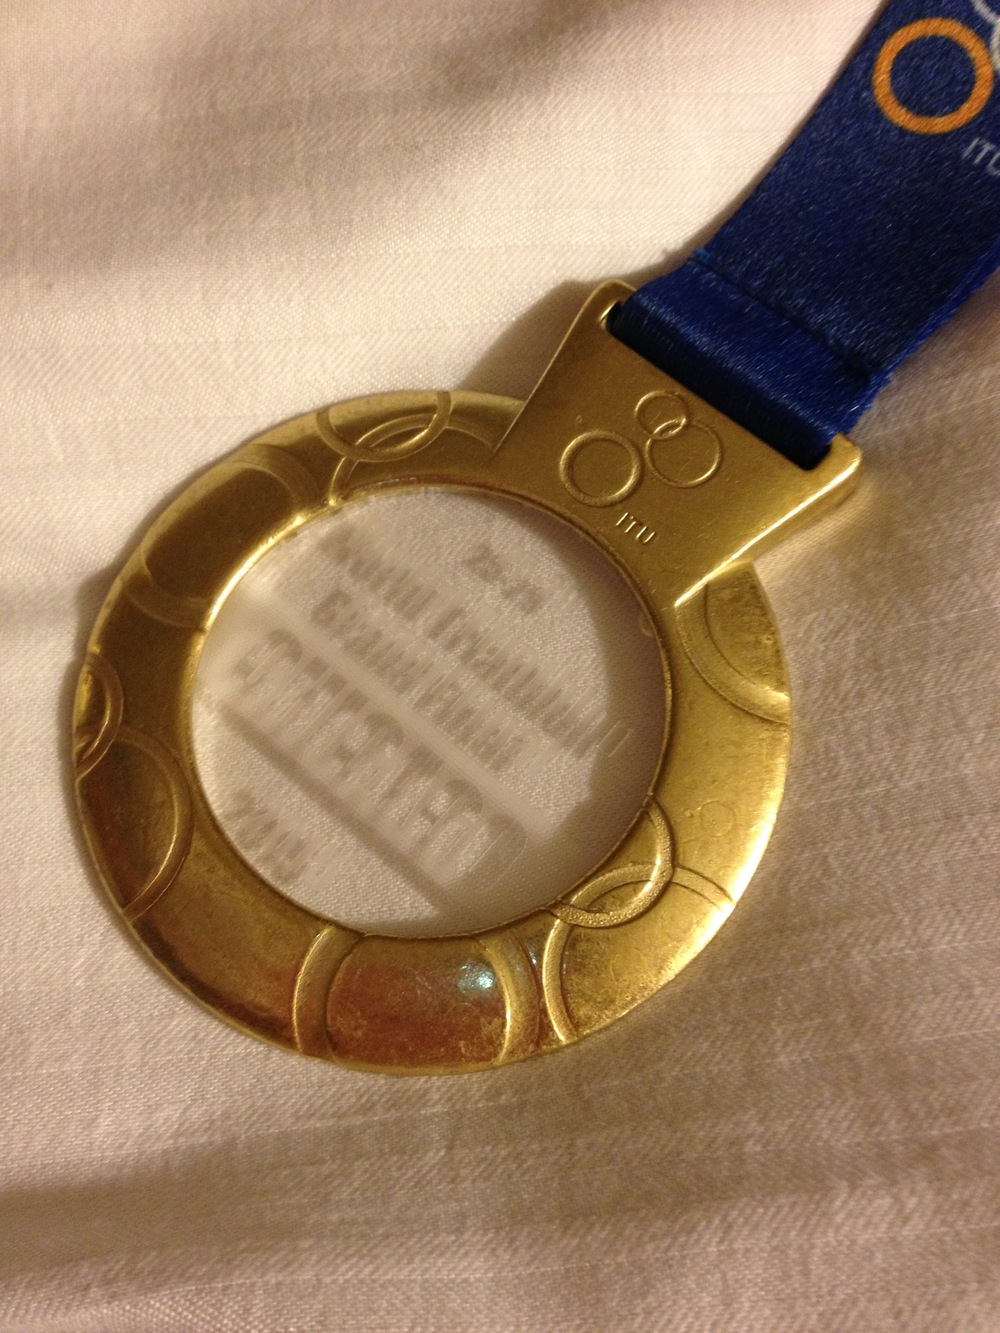 2015 World Silver Medalist & Age Group Champ!